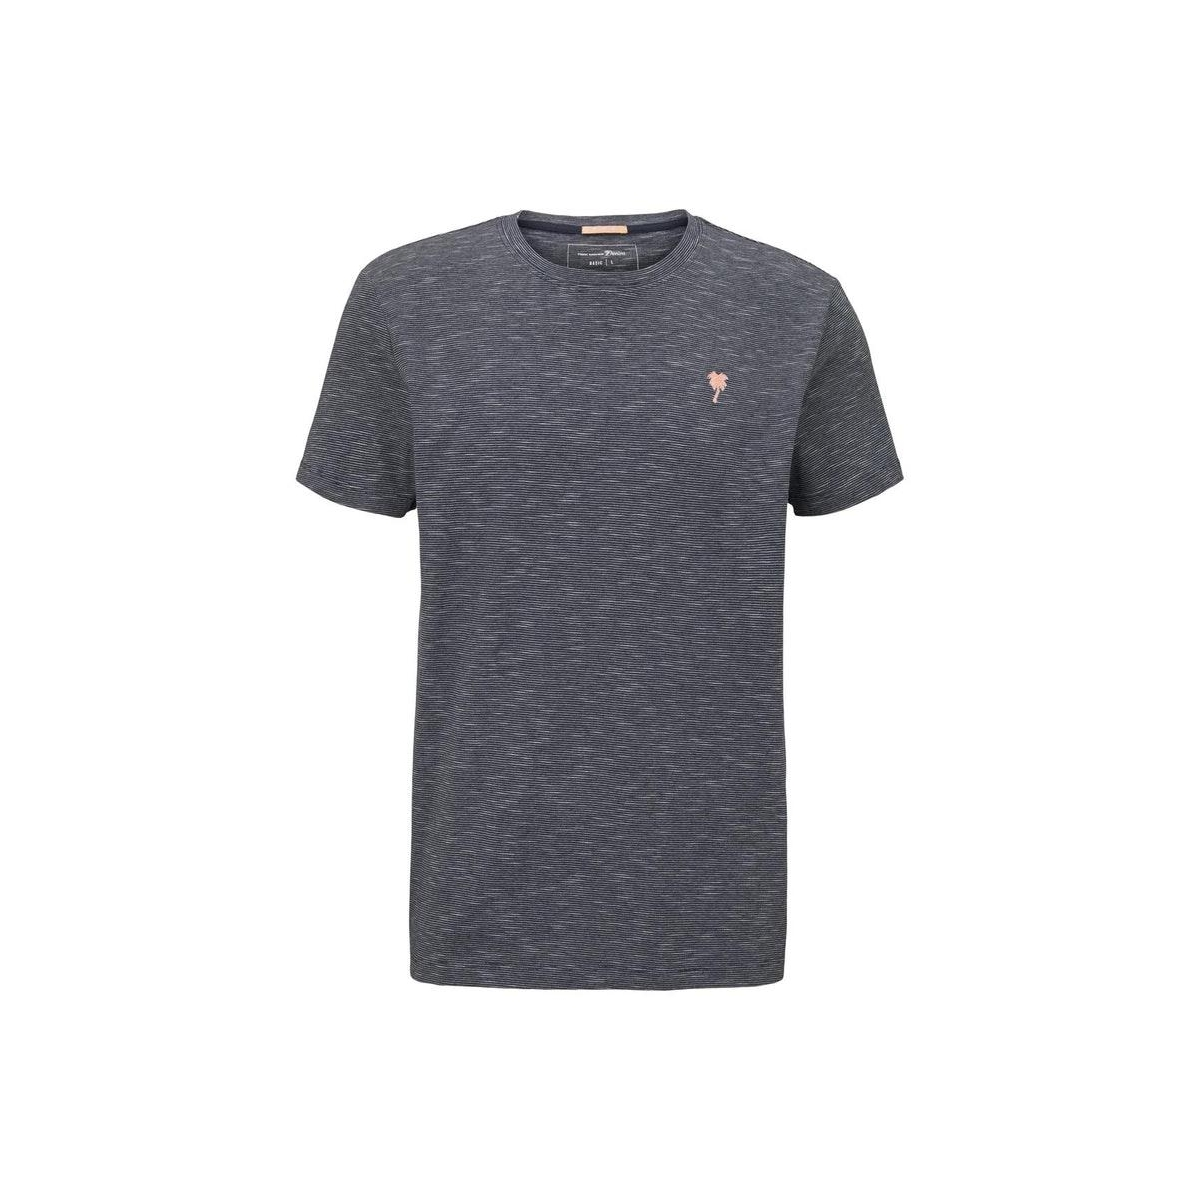 gestreept t shirt 1019085xx12 tom tailor t-shirt 19183